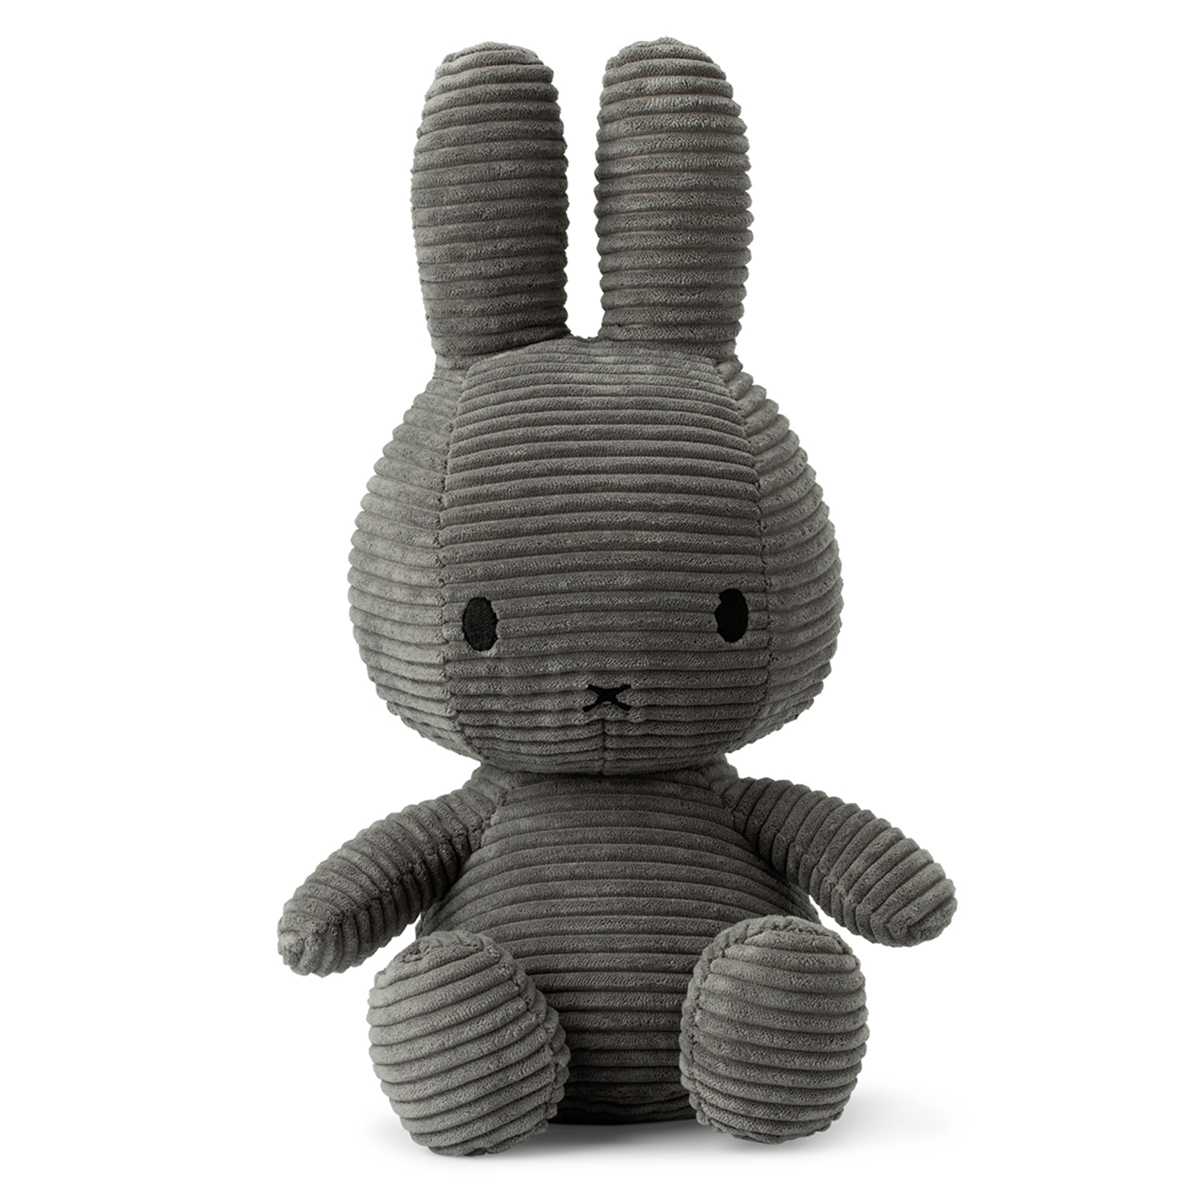 Peluche Lapin Miffy Anthracite - Petit Peluche Lapin Miffy Anthracite 24 cm